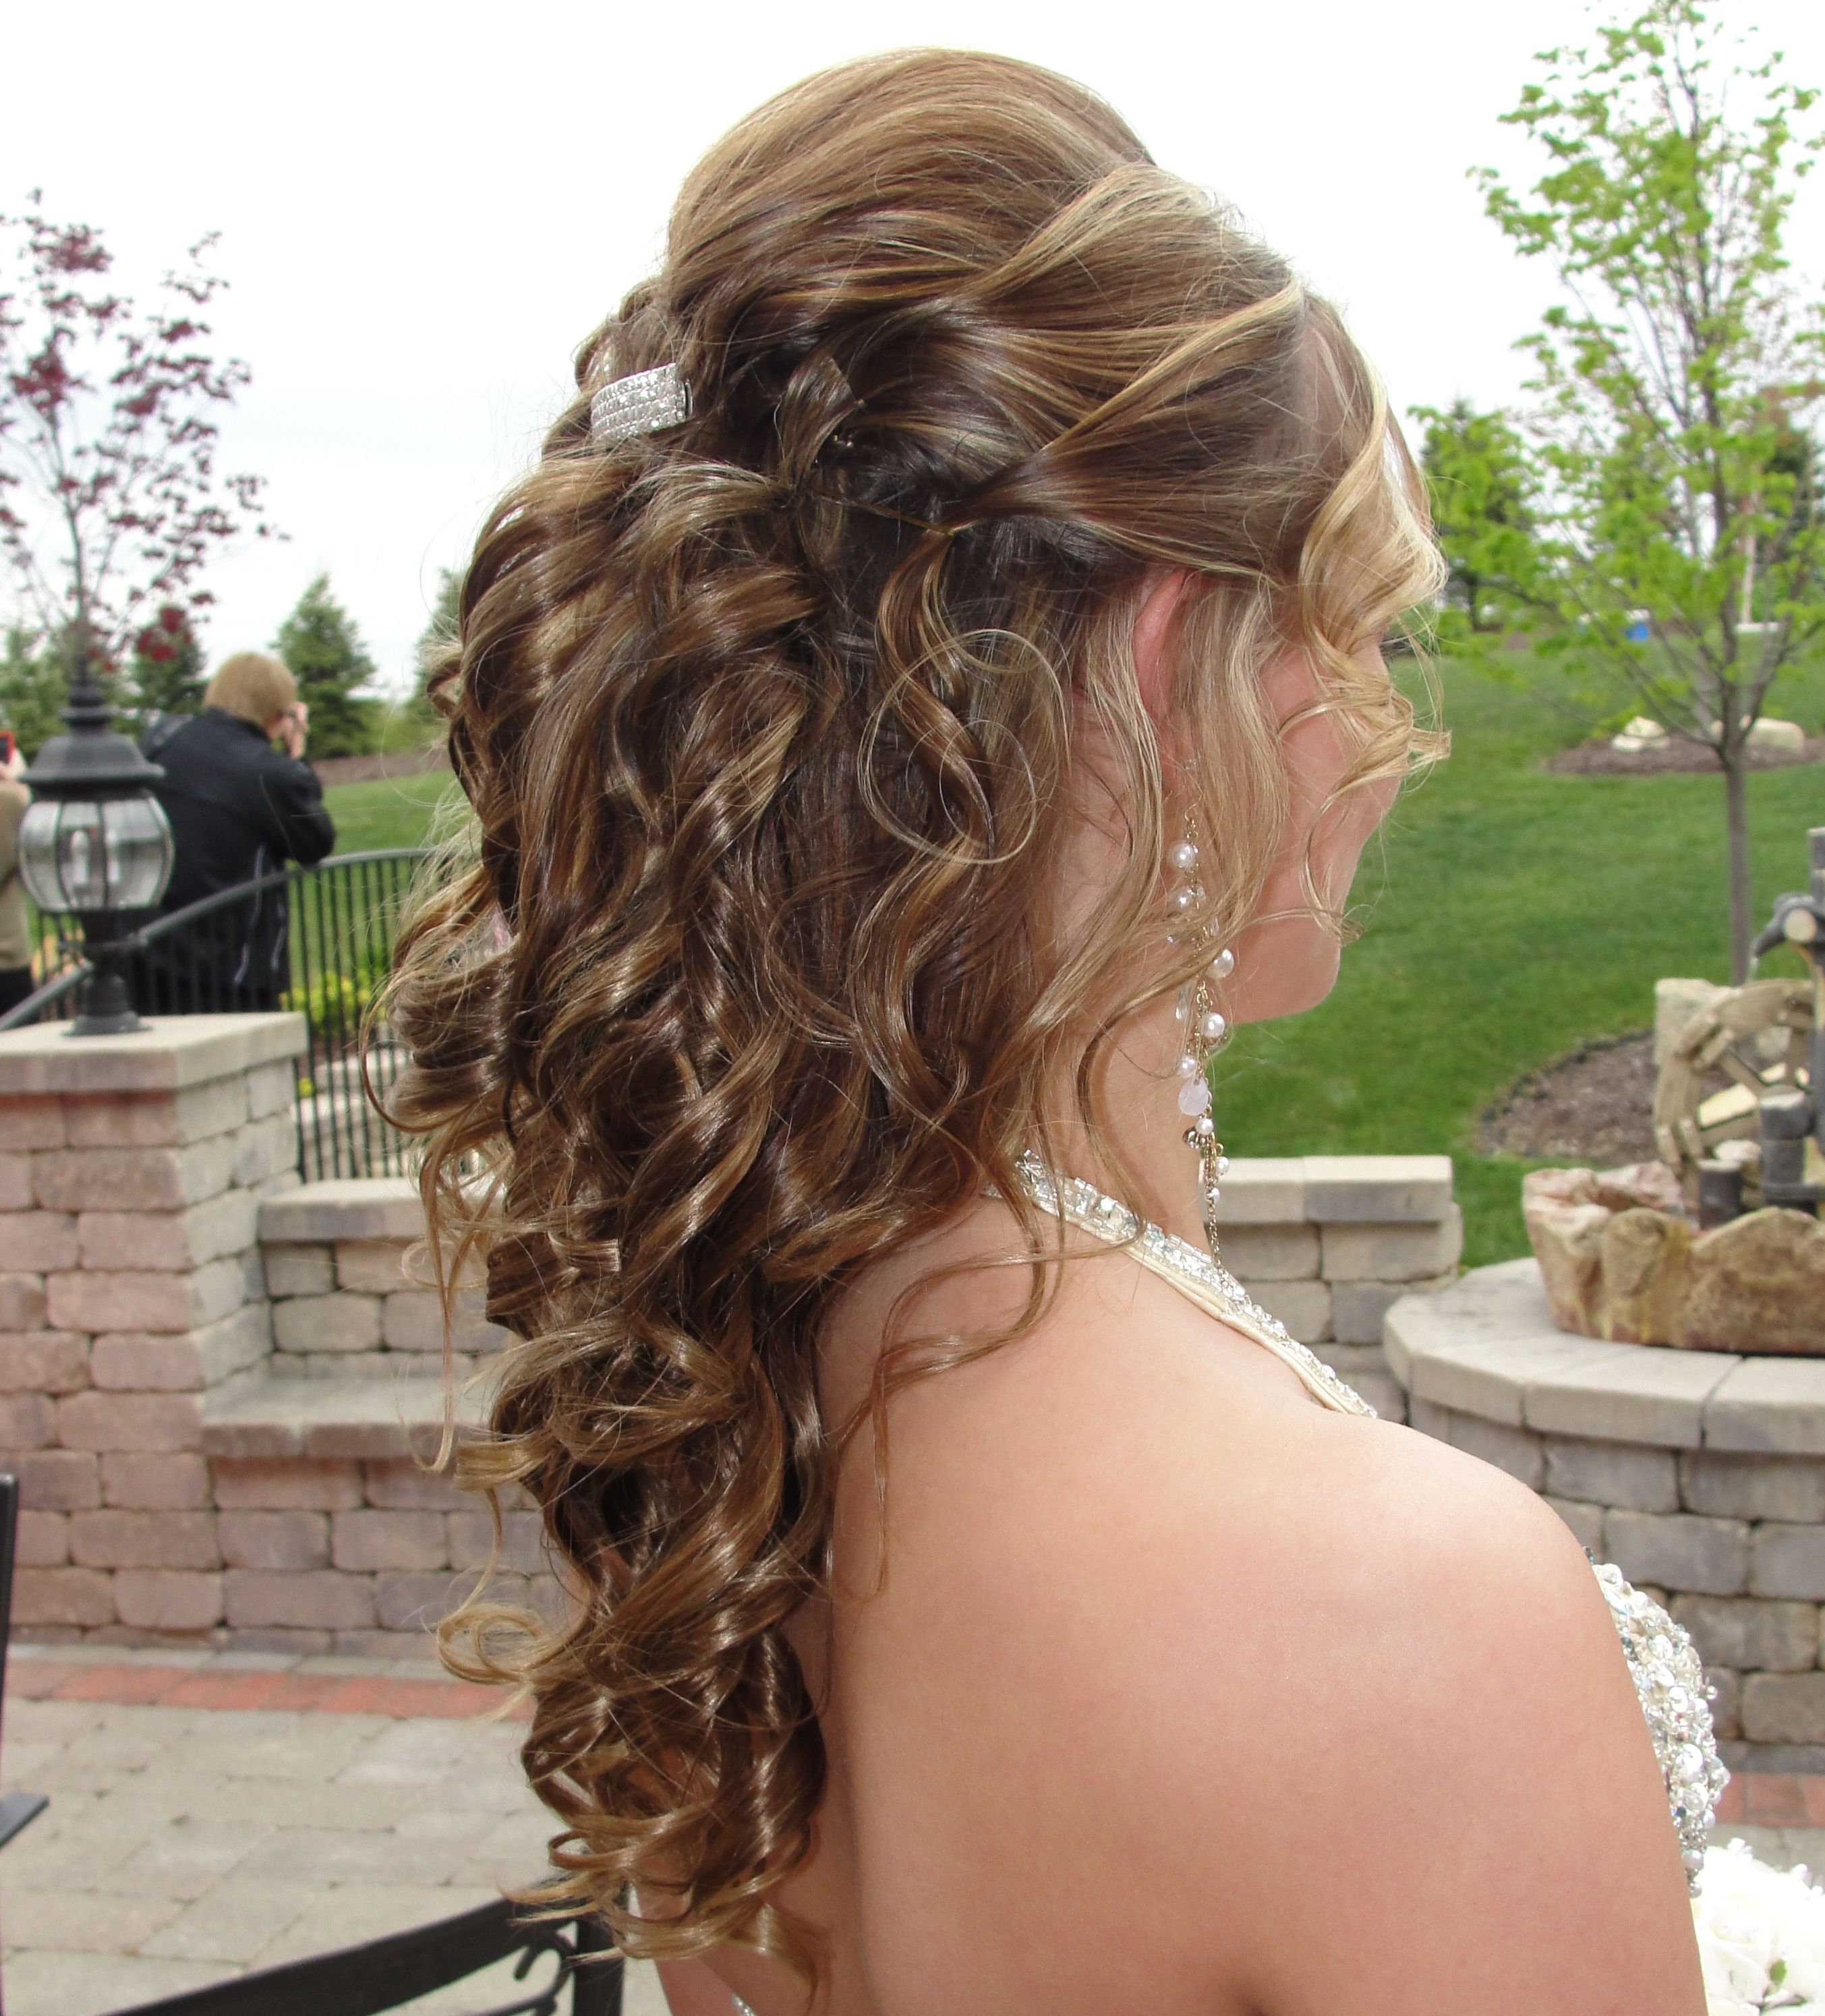 10+ incomparable women hairstyles half up ideas | updos prom